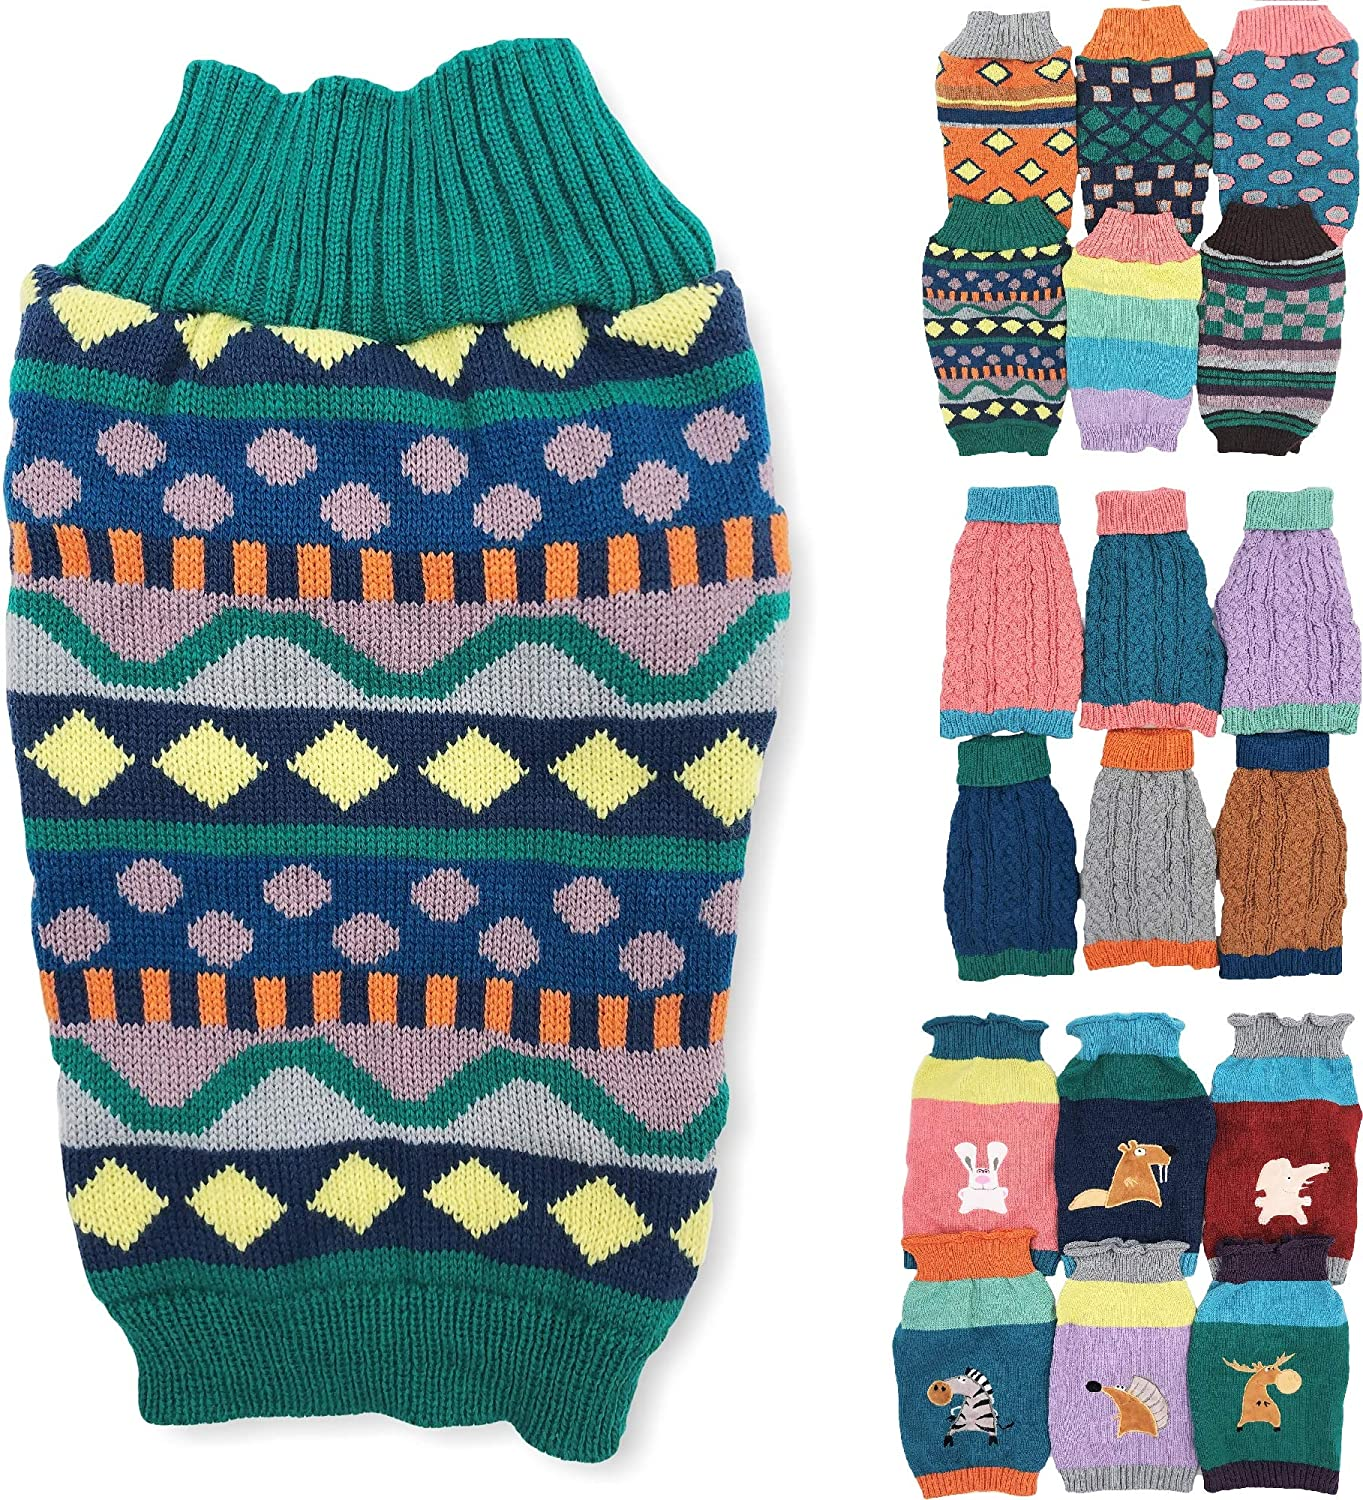 Dog Sales Sweater Knitted Fashion Warm Soft Winter Small L Over item handling for Clothes